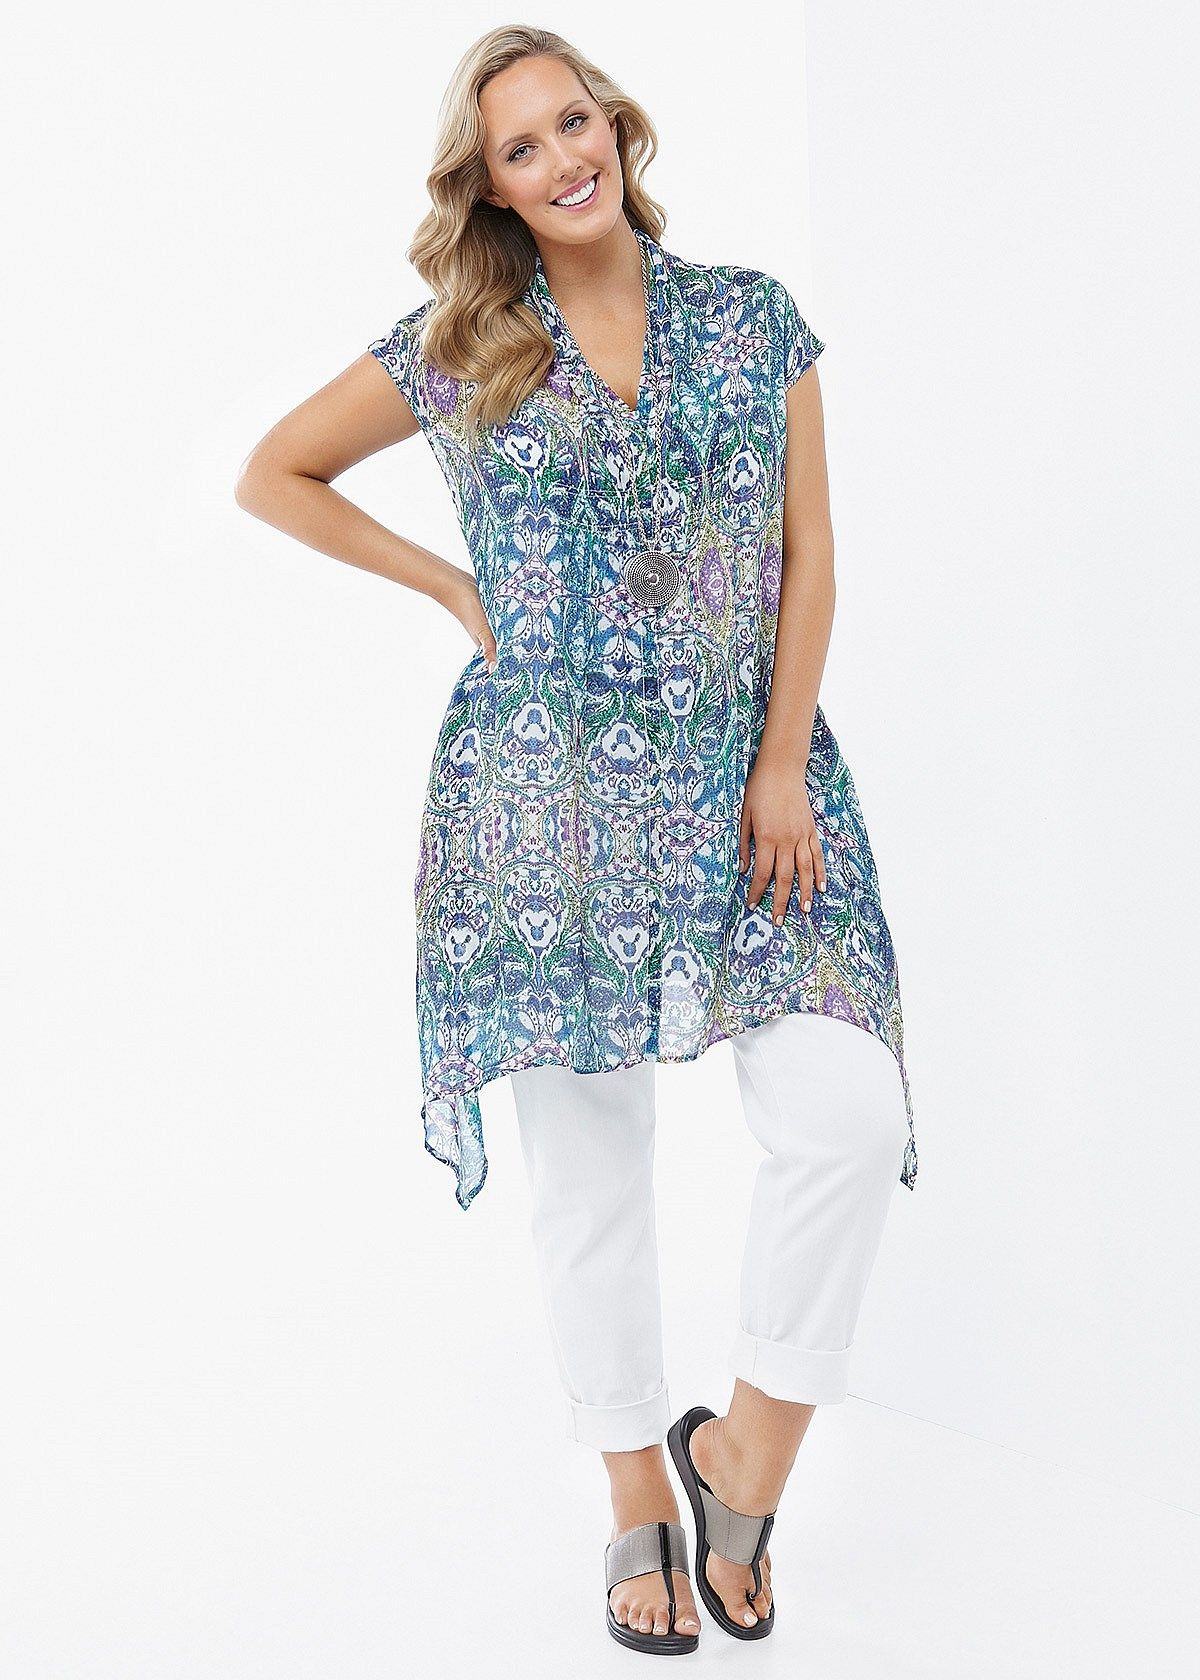 4fd1bef5601 Step out in style for less with Plus Size Women s Clothing on SALE at  Taking Shape. Shop sizes 12 - 24 online today and get Free Shipping in  Australia Over ...